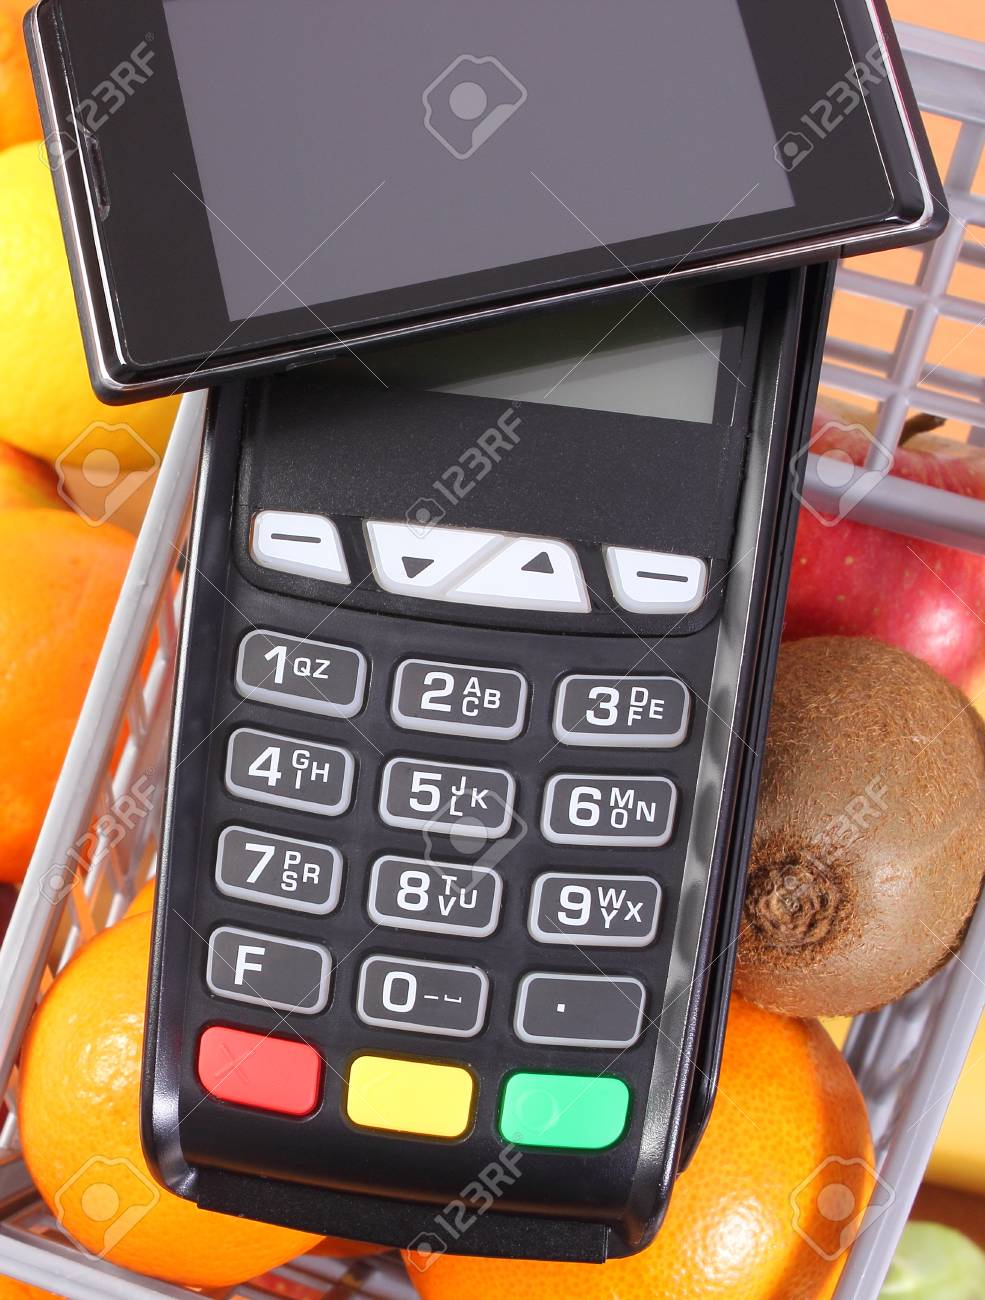 Payment terminal, credit card reader with mobile phone with NFC